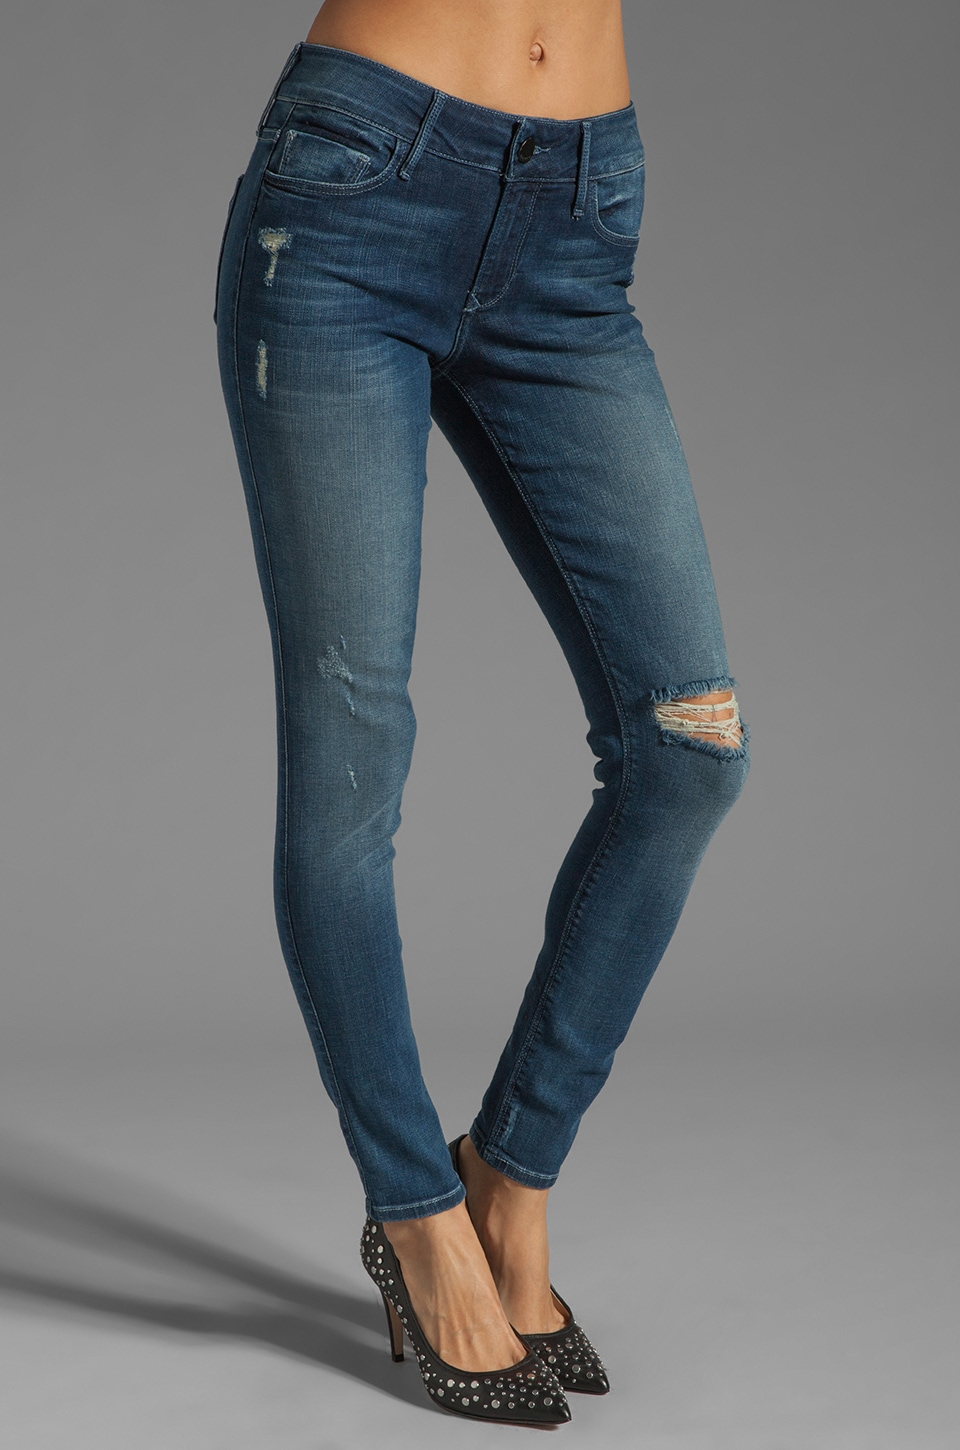 Black Orchid Mid Rise Skinny in Splash